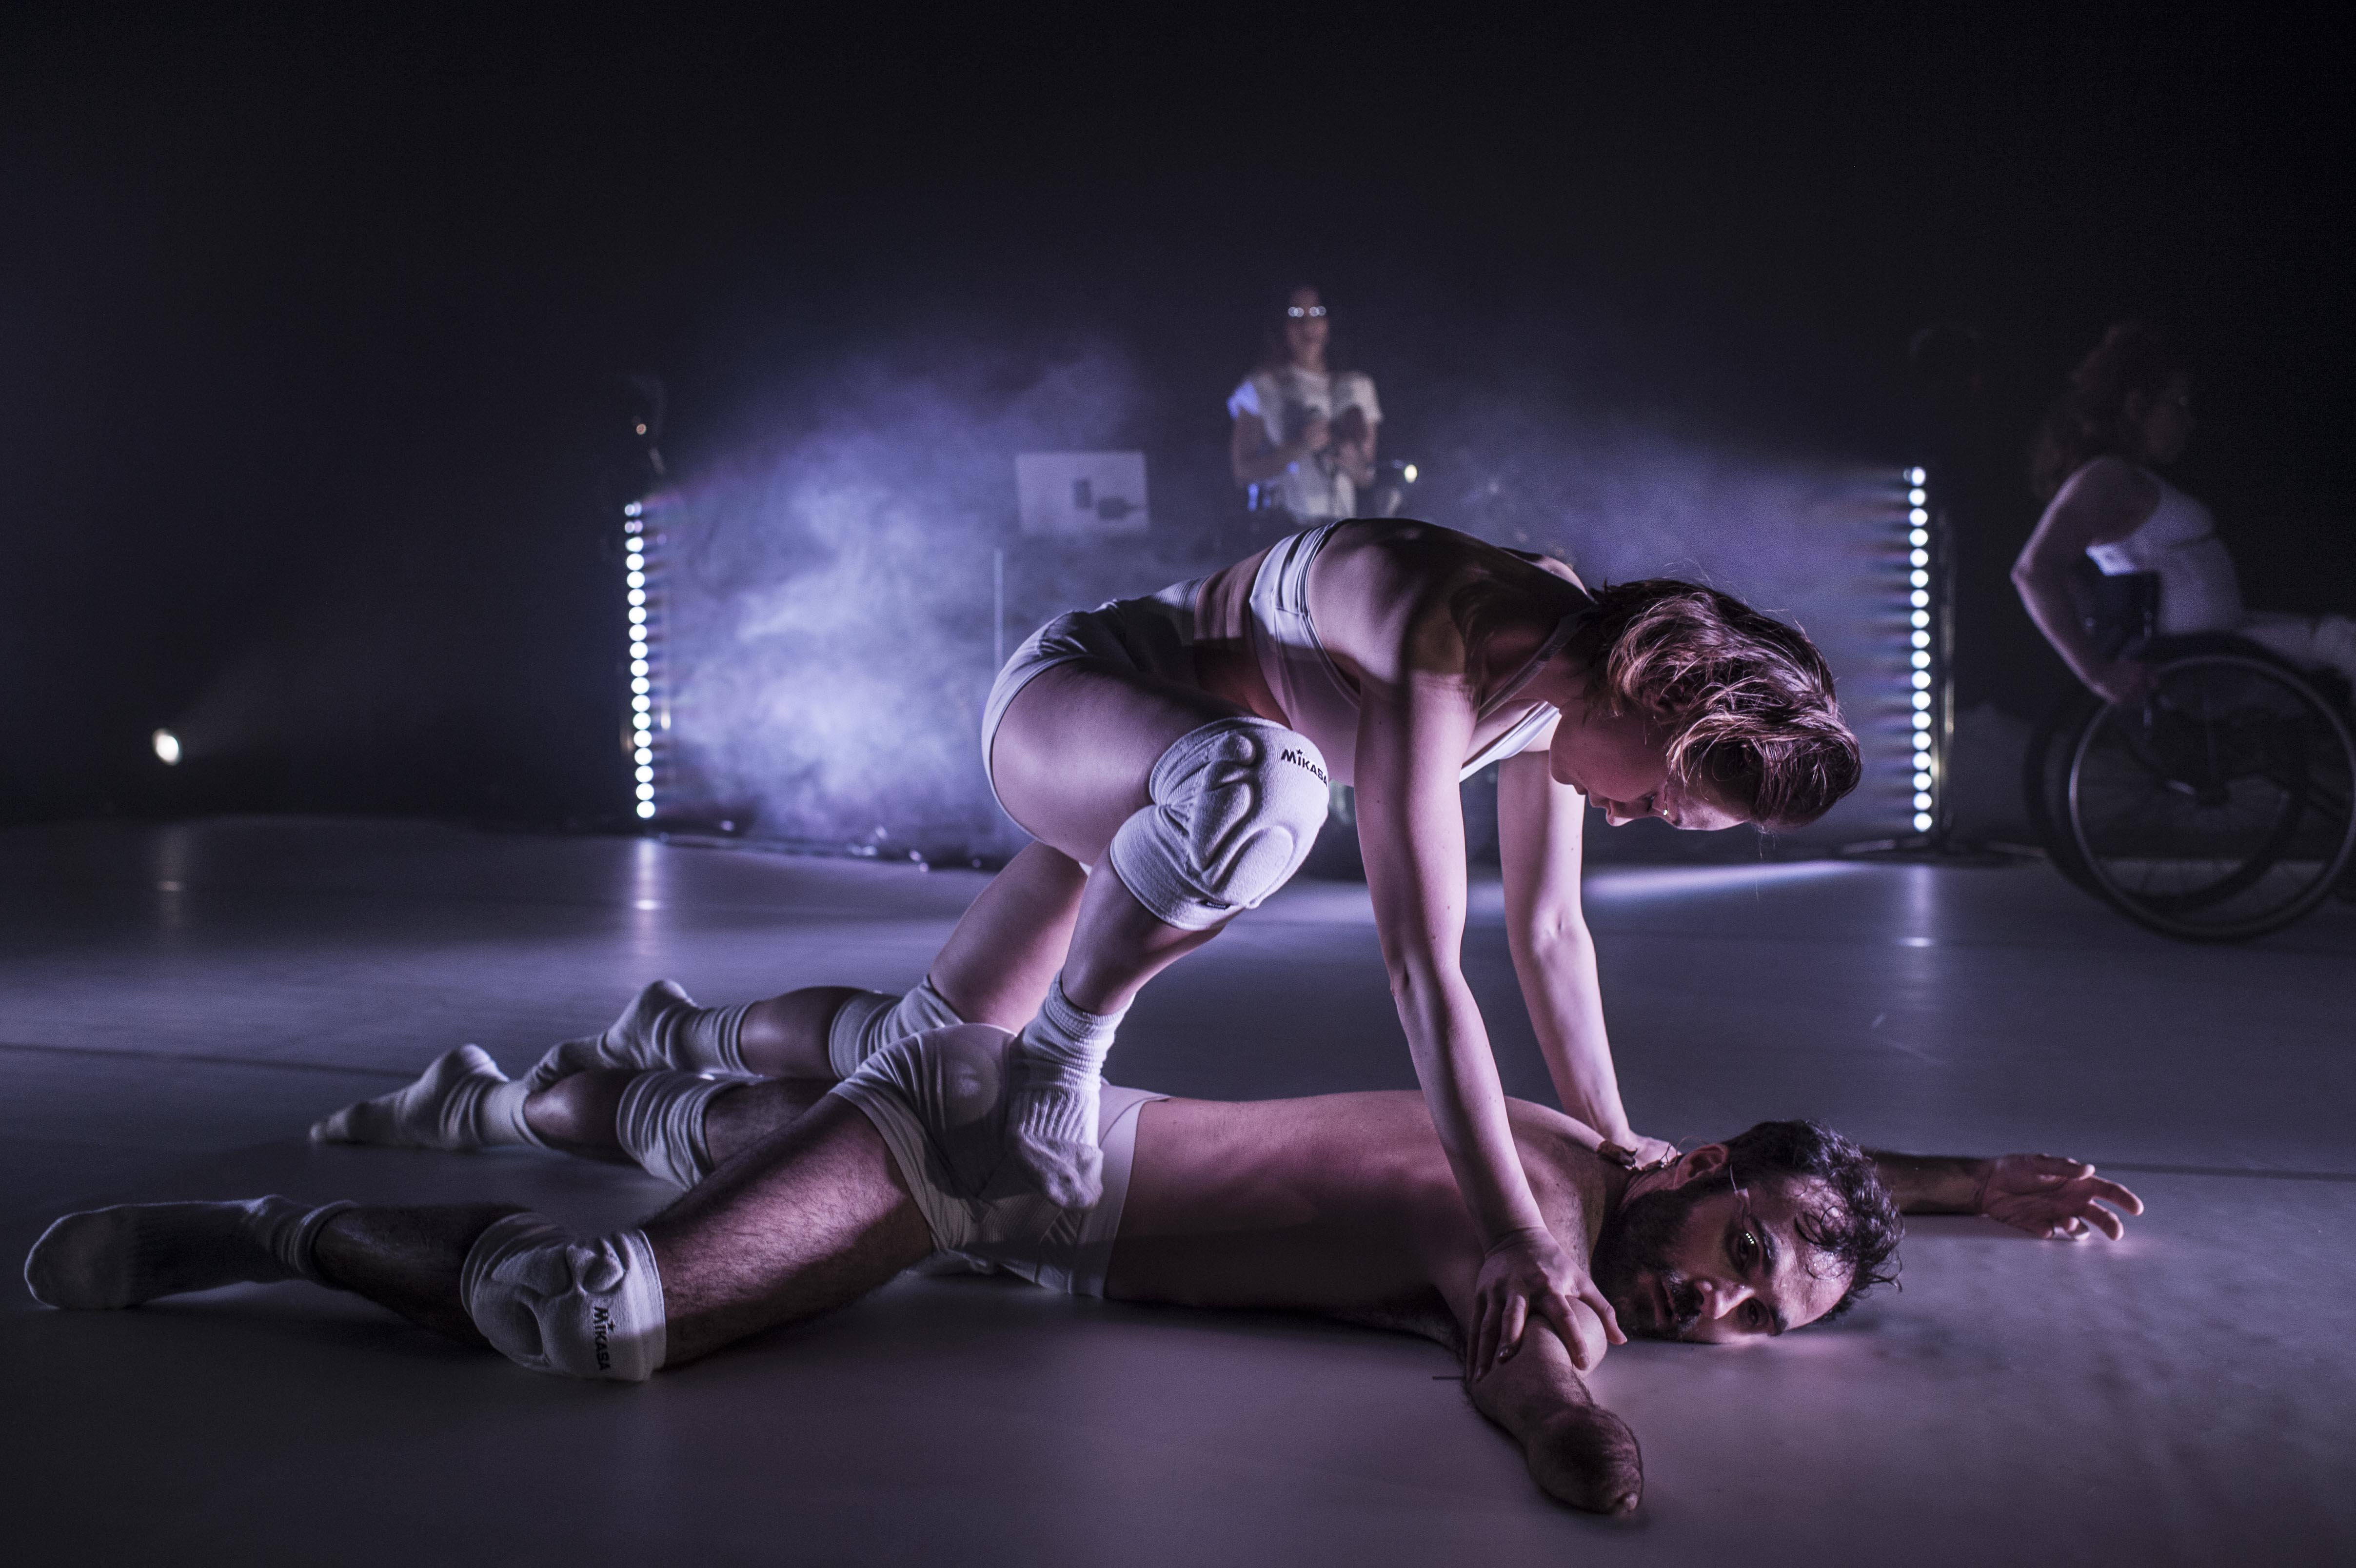 Image for the performance Skirtpower. Photo: Chrisander Brun